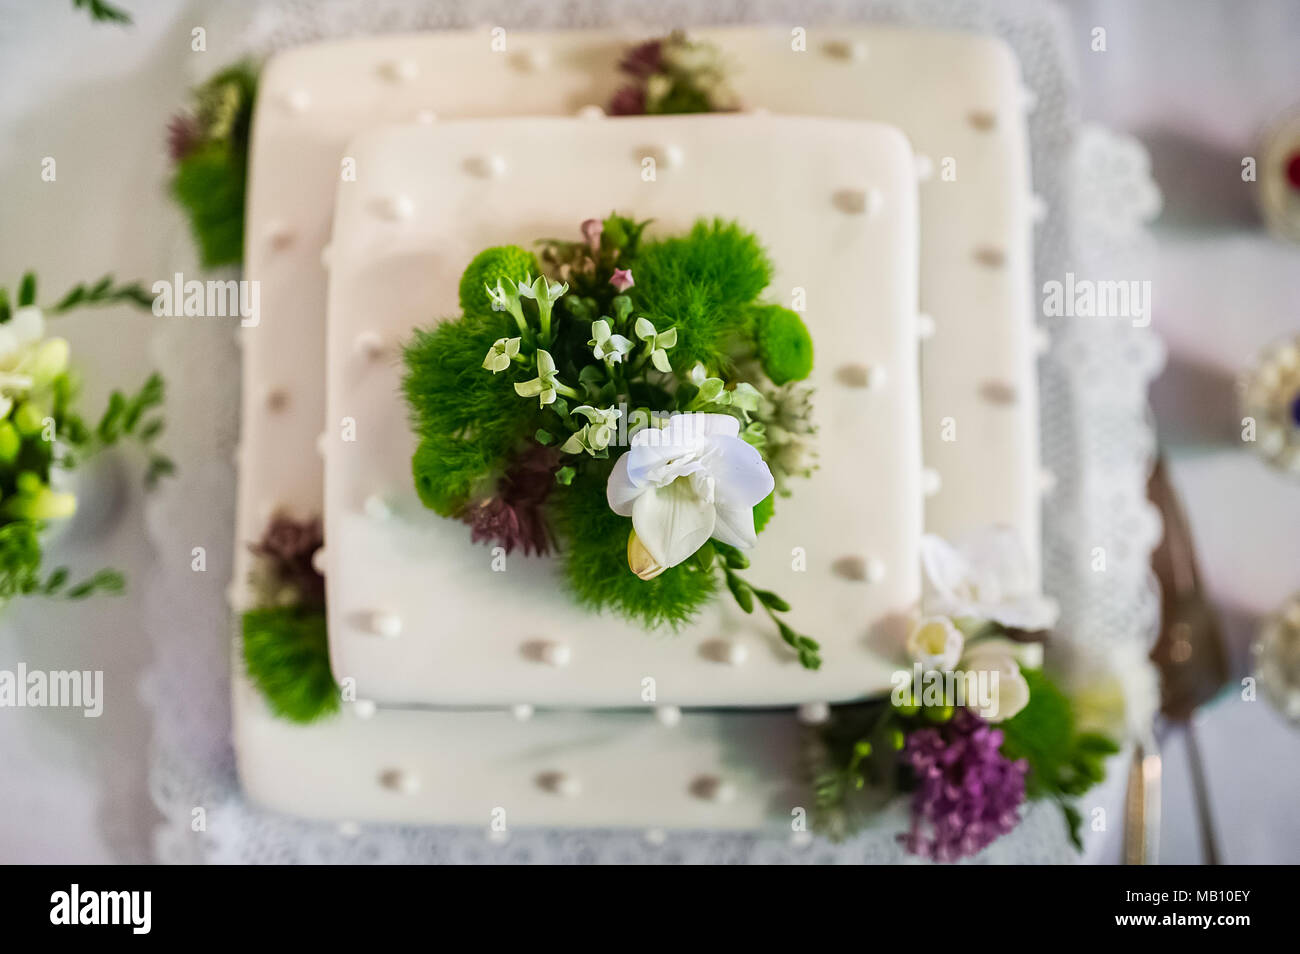 Wedding cake with flower decor and white icing - Stock Image